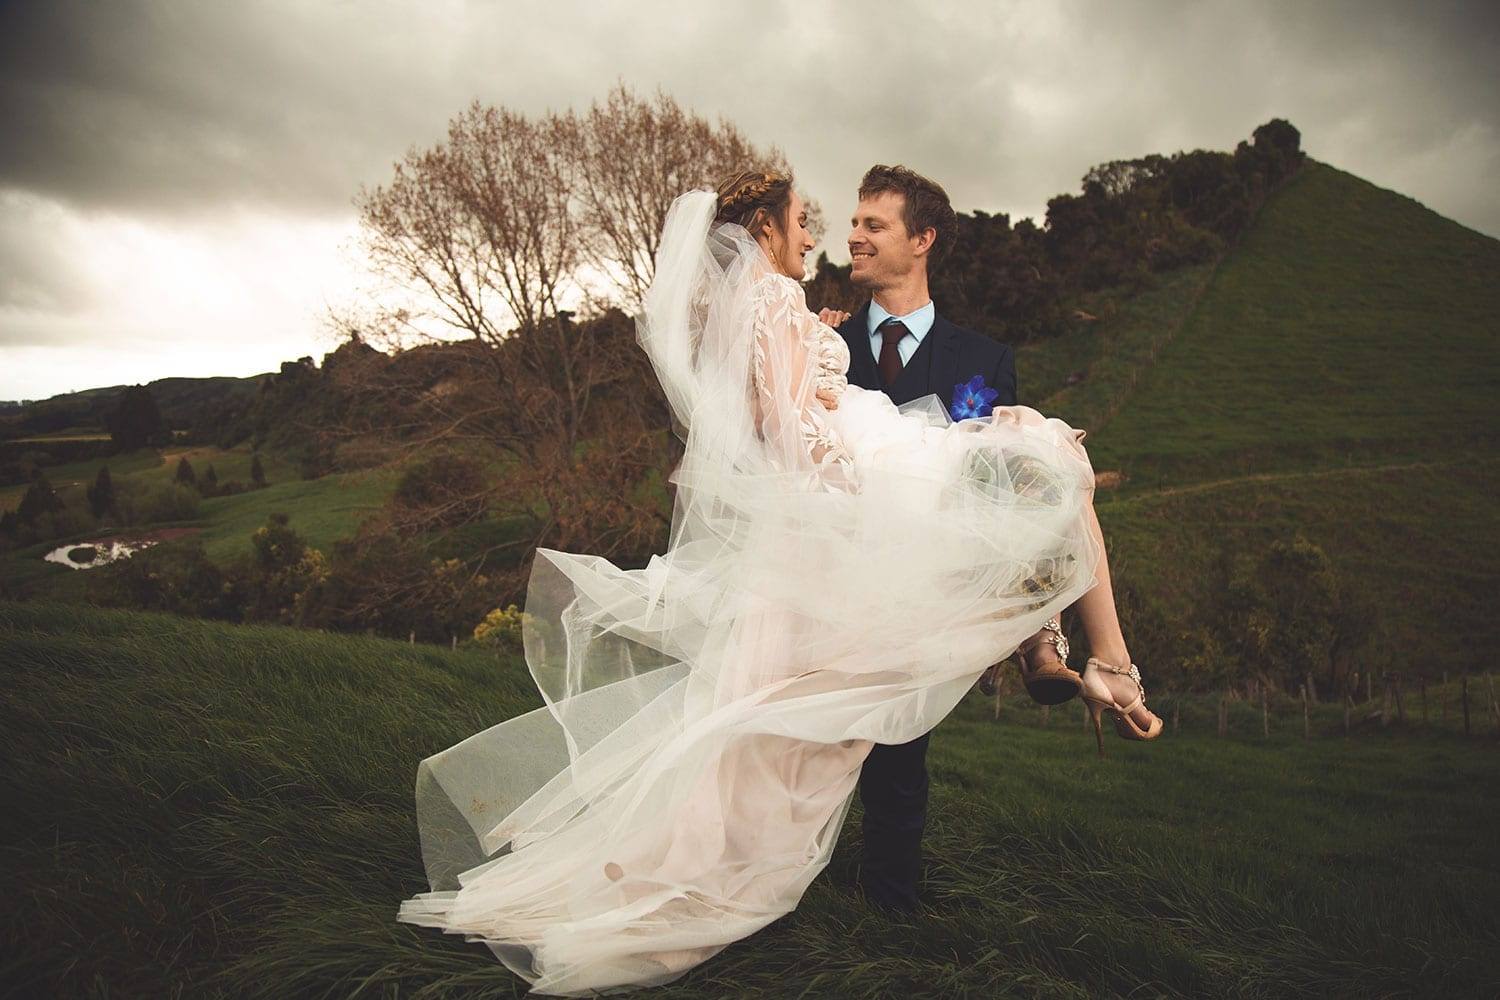 Vinka Design Features Real Weddings - bride in custom made gown, a combination of Isabelle and Ivy from our Heart of Havana collection. Groom picks up bride